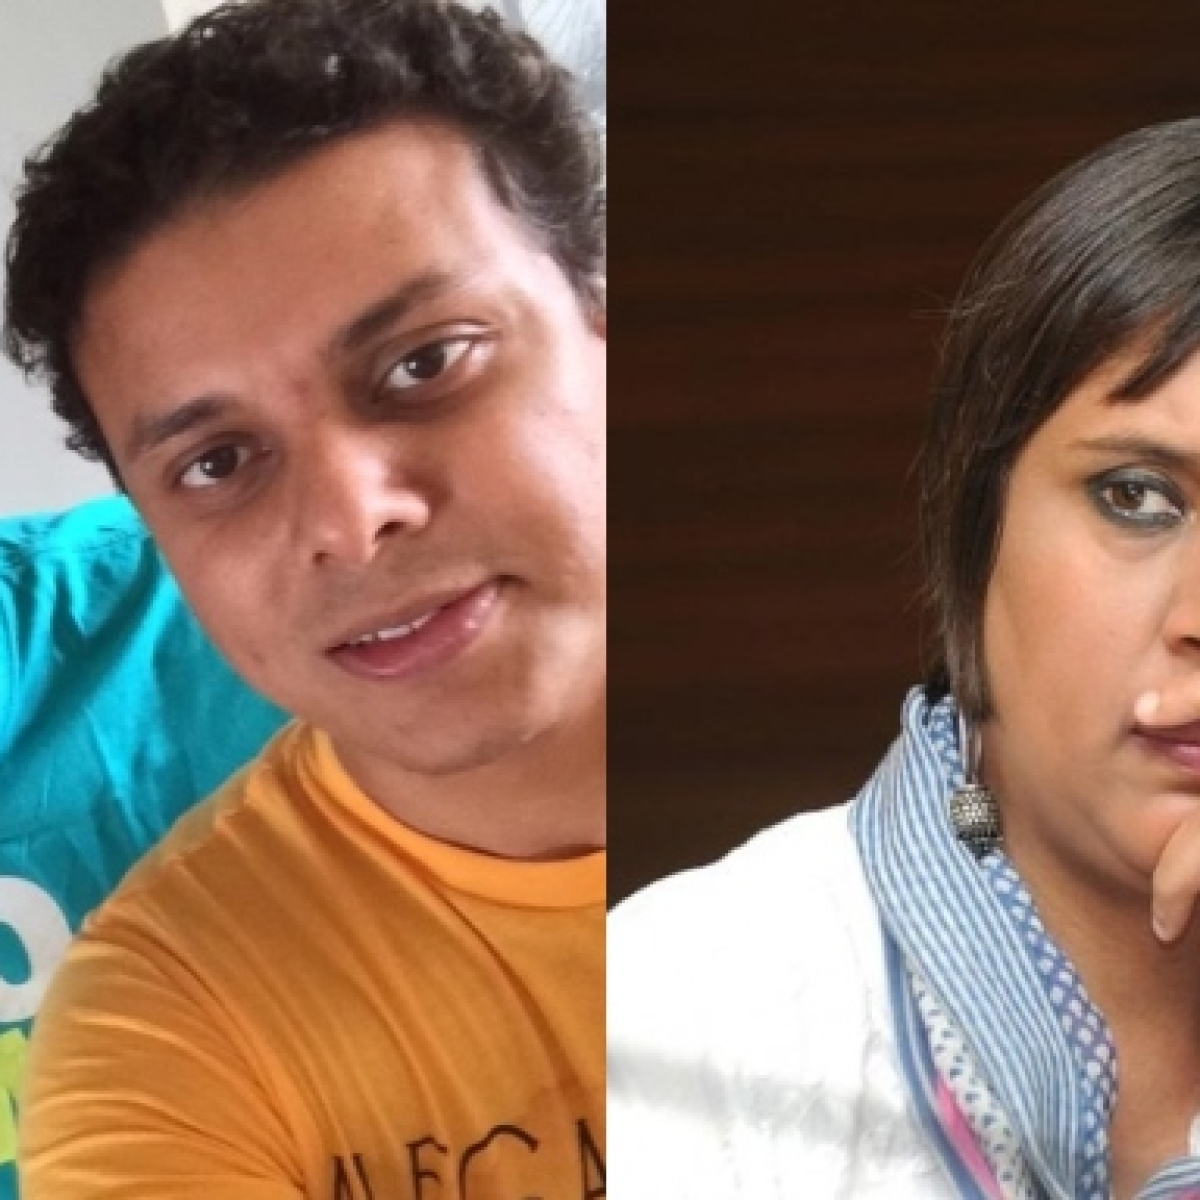 Sushant's brother-in-law 'very disappointed with the path' Barkha Dutt chose; slams Susan Walker's interview